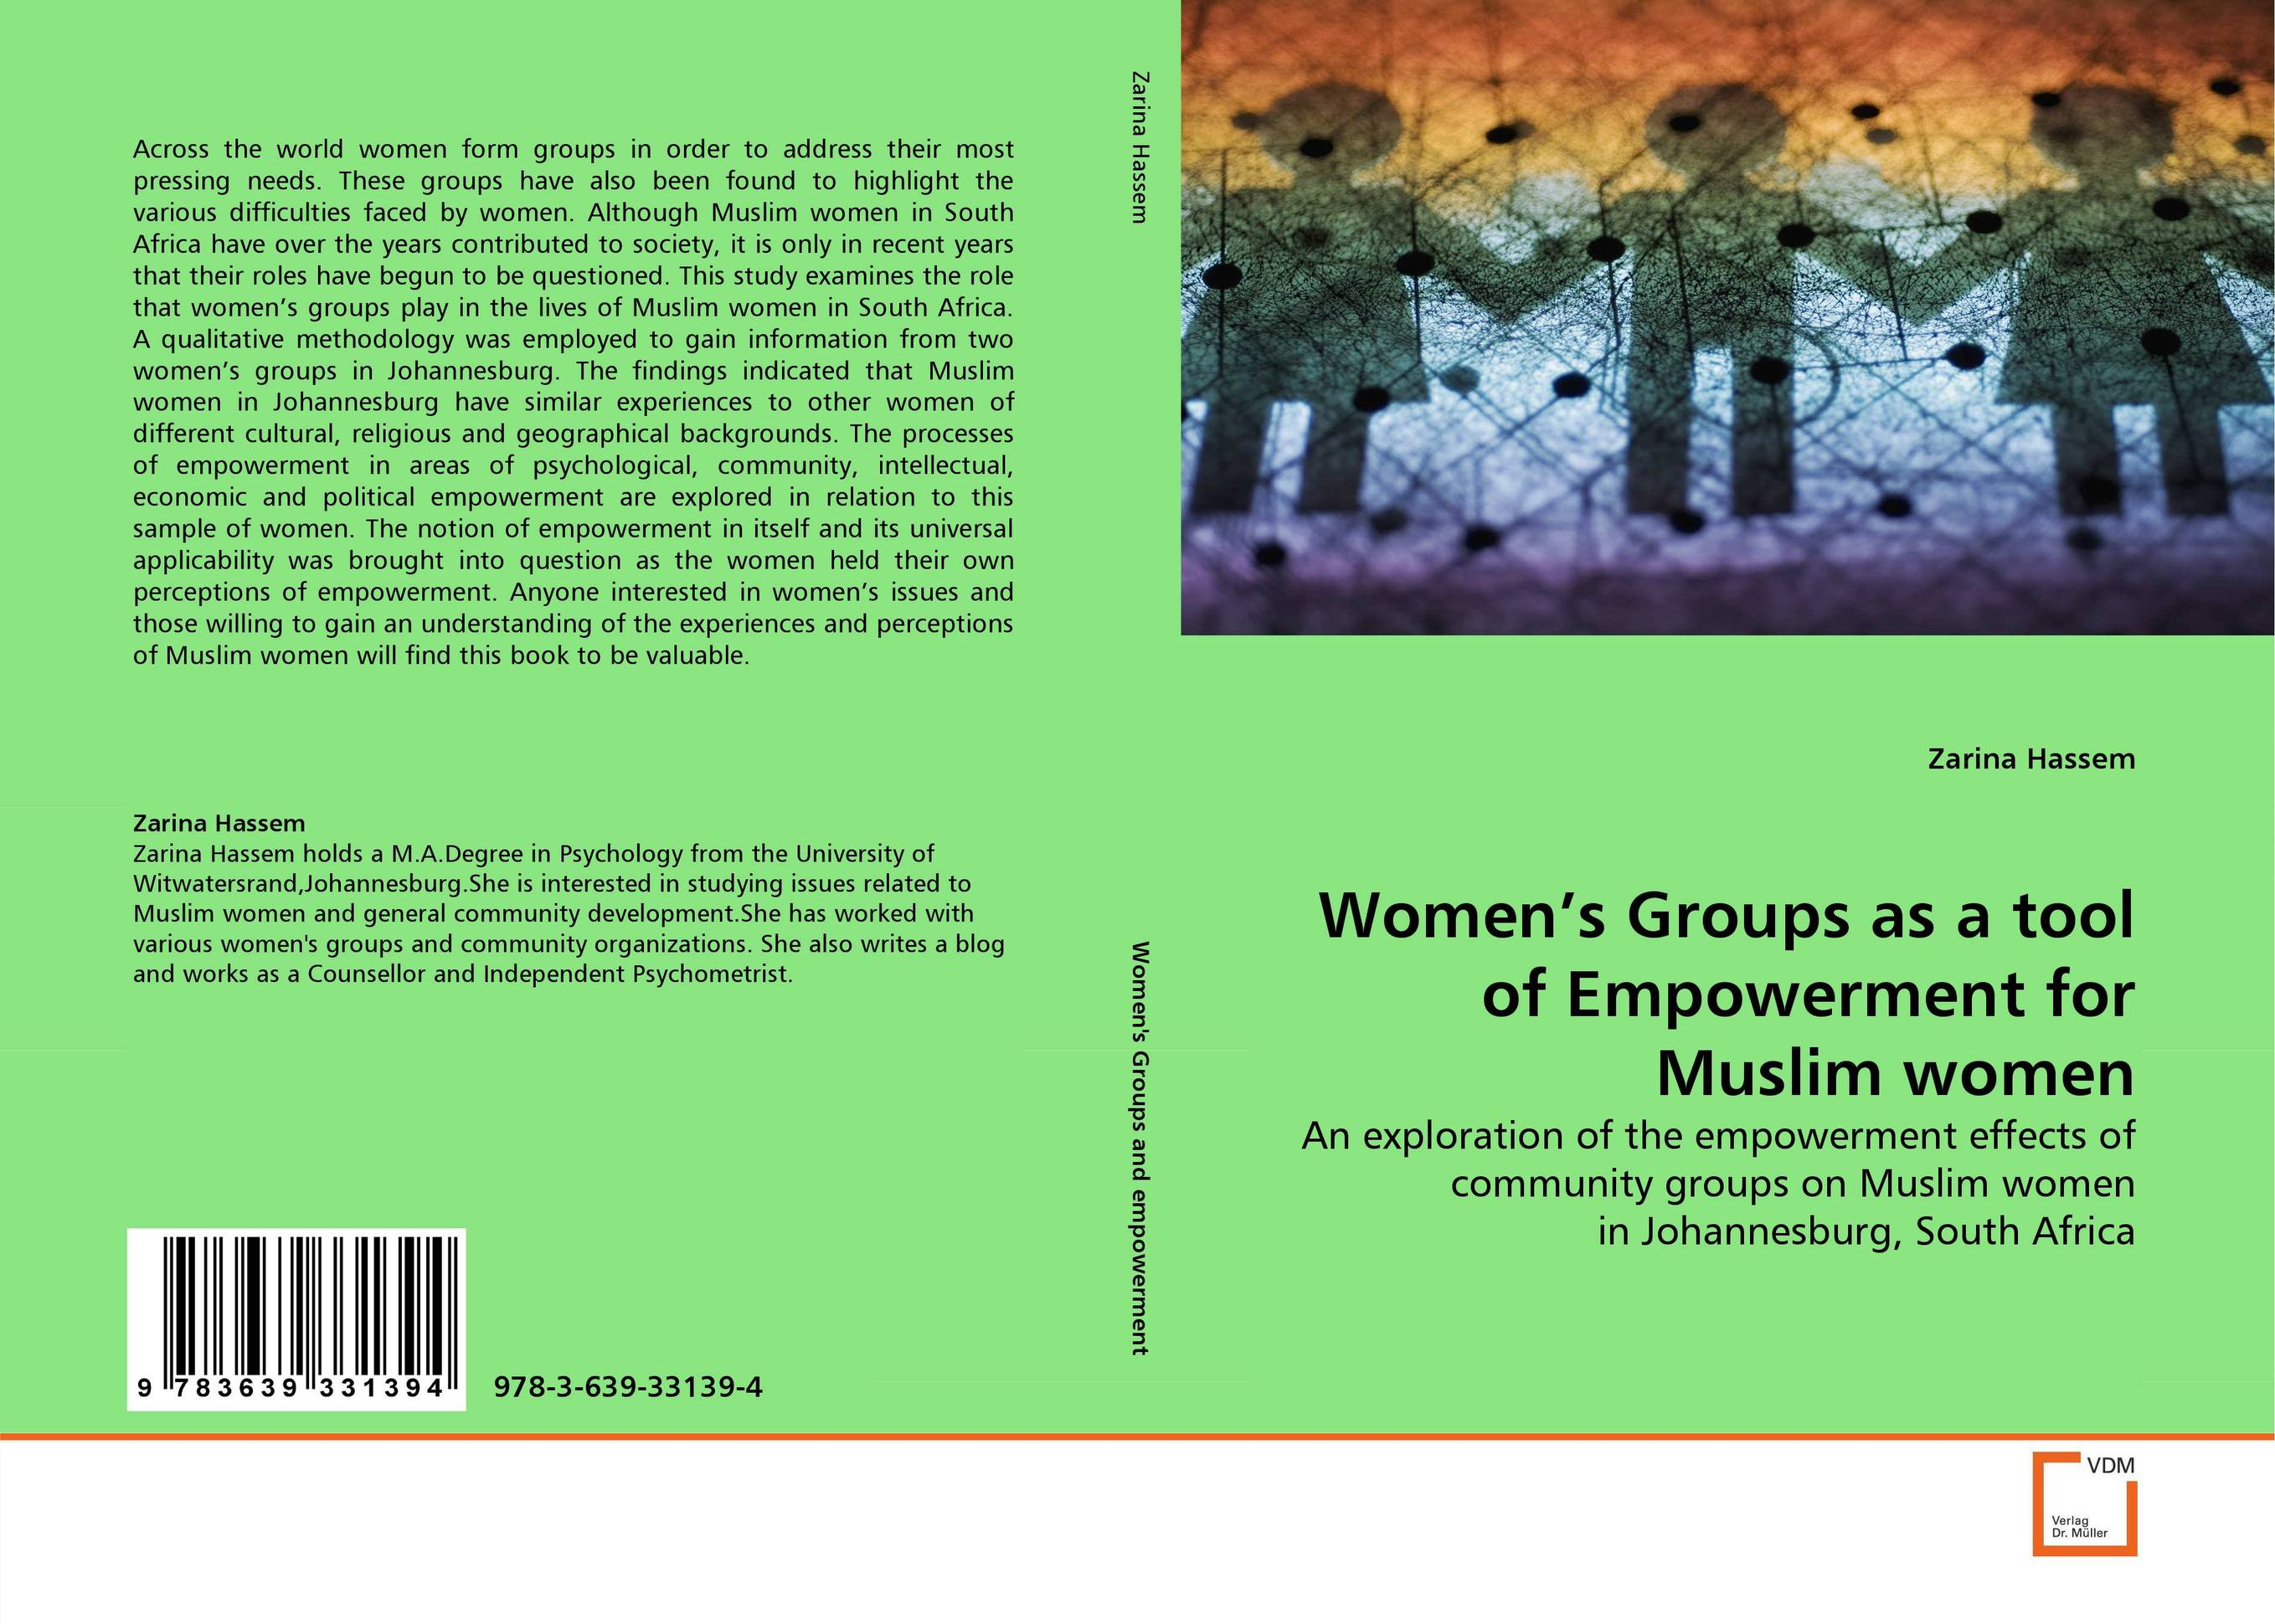 Women''s Groups as a tool of Empowerment for Muslim women presidential nominee will address a gathering